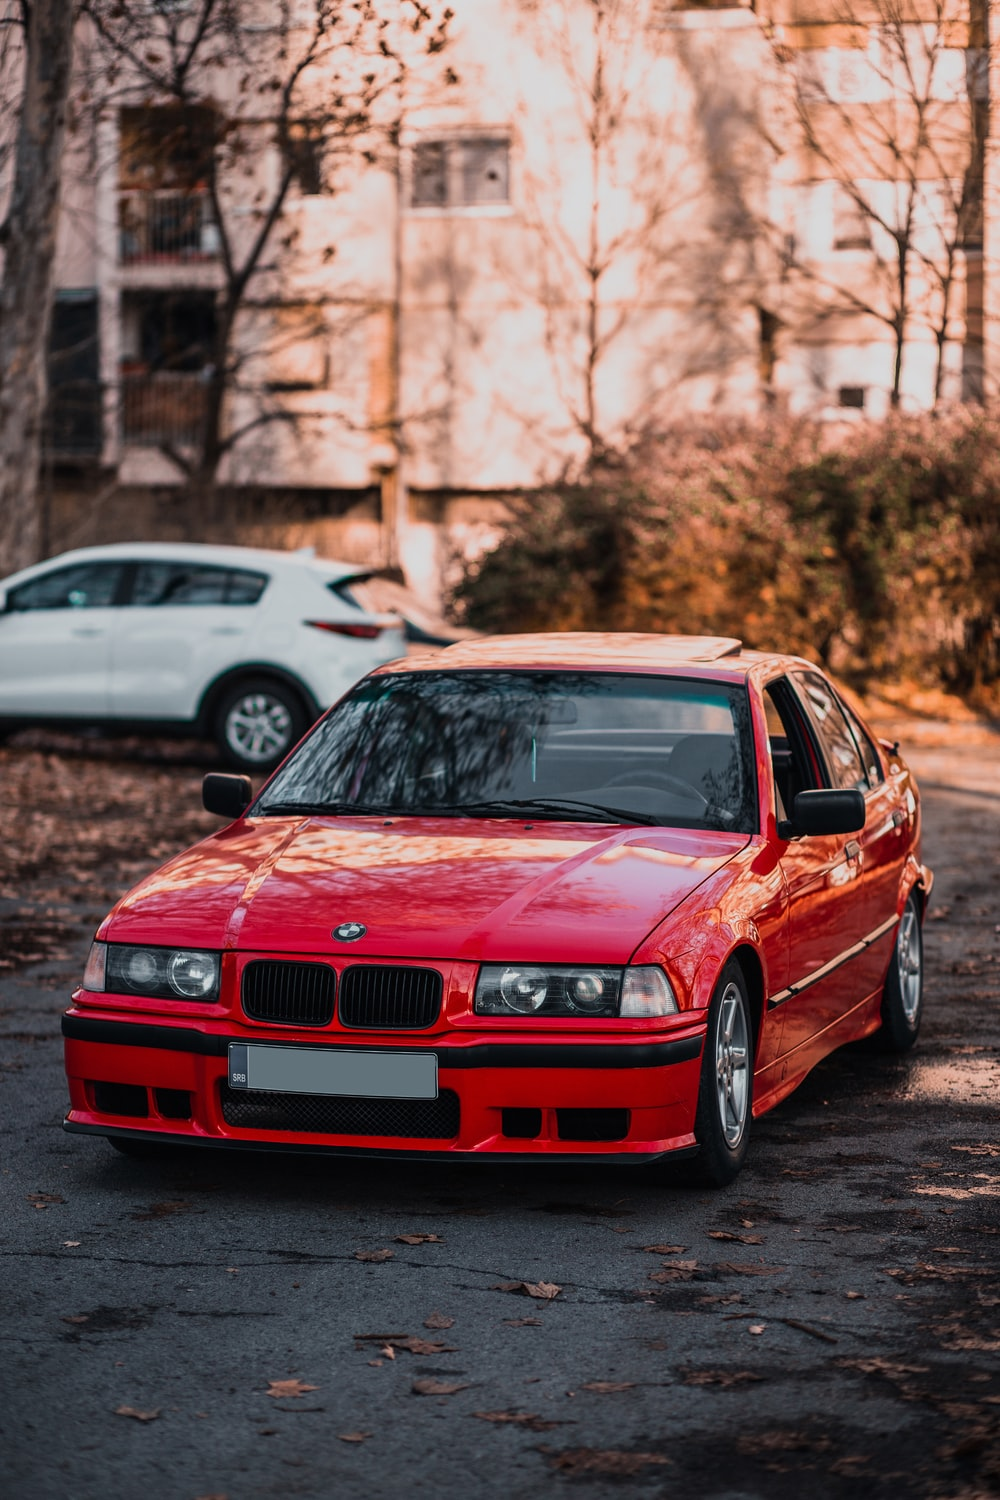 red bmw m 3 parked on street during daytime